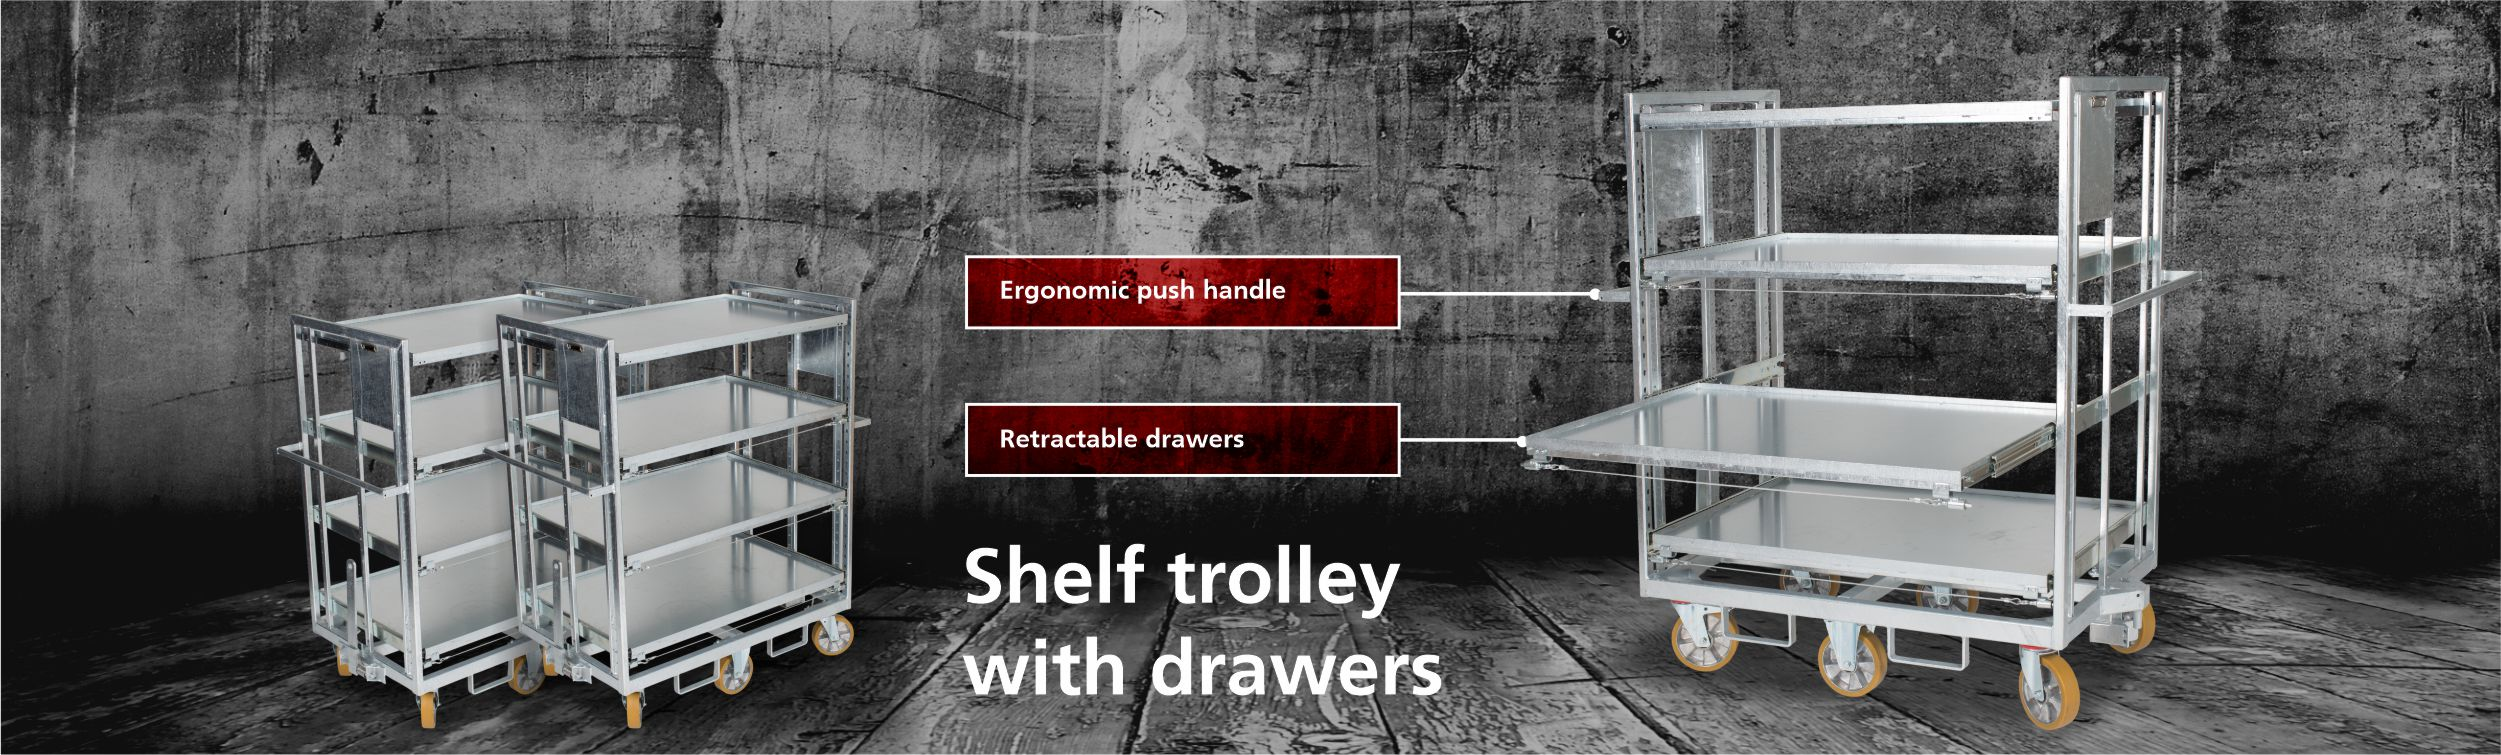 shelf_trolley_with_drawers